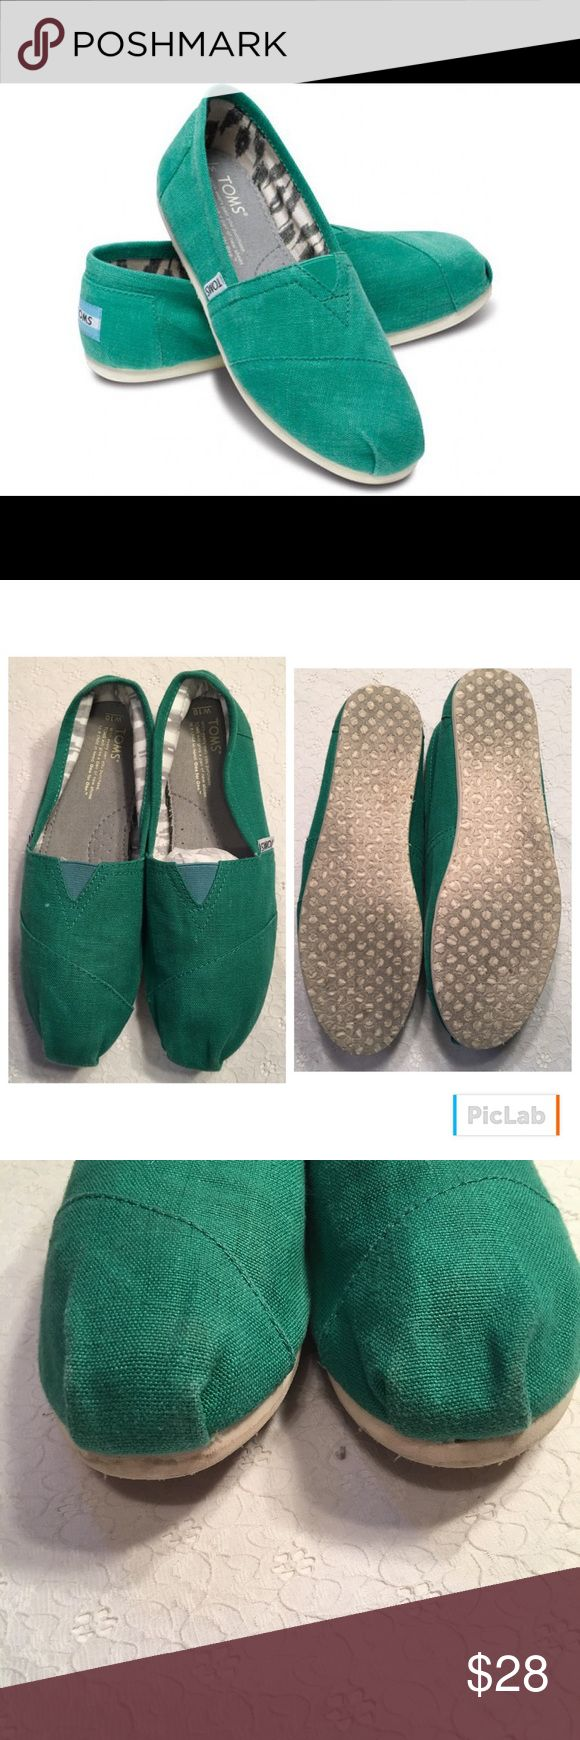 Green Toms Green Toms. Size 10. Great used condition. TOMS Shoes